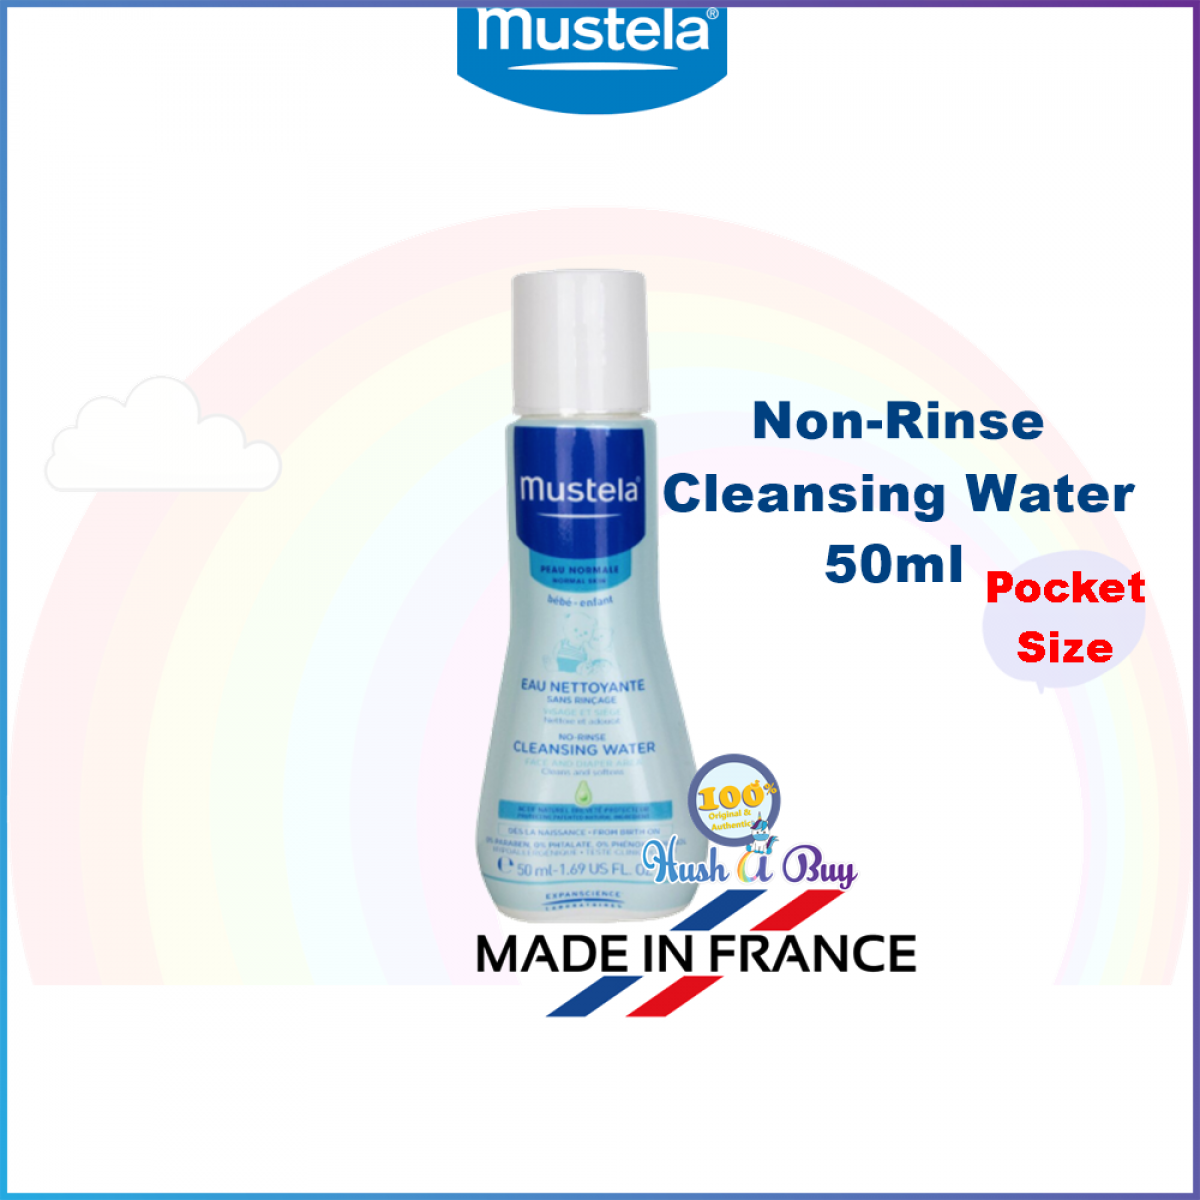 Mustela Limited Edition No-Rinse Cleansing Water for Baby 50ml - Pocket Size - Made in France